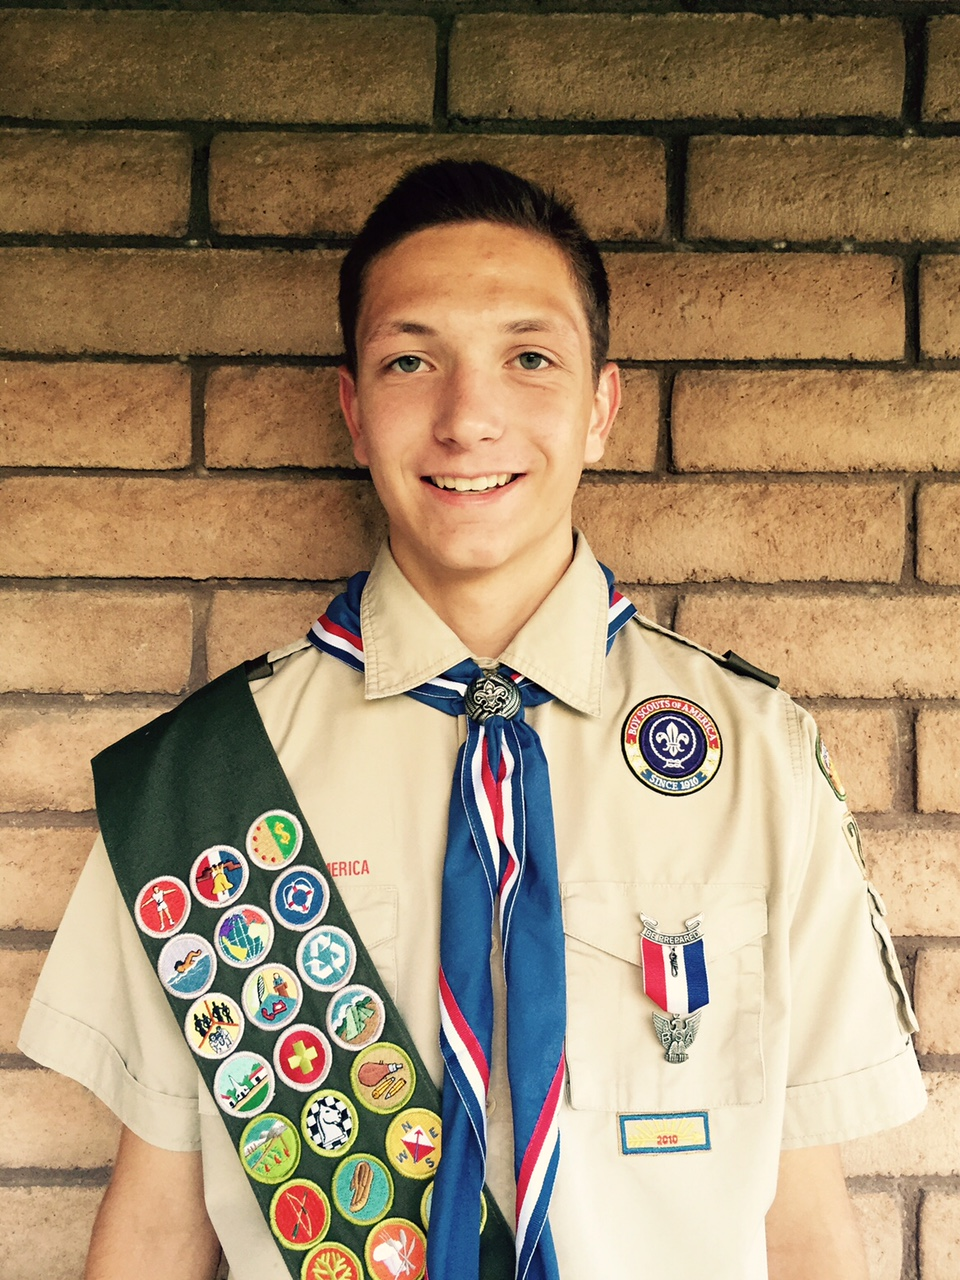 Tobler receives Eagle Scout Award